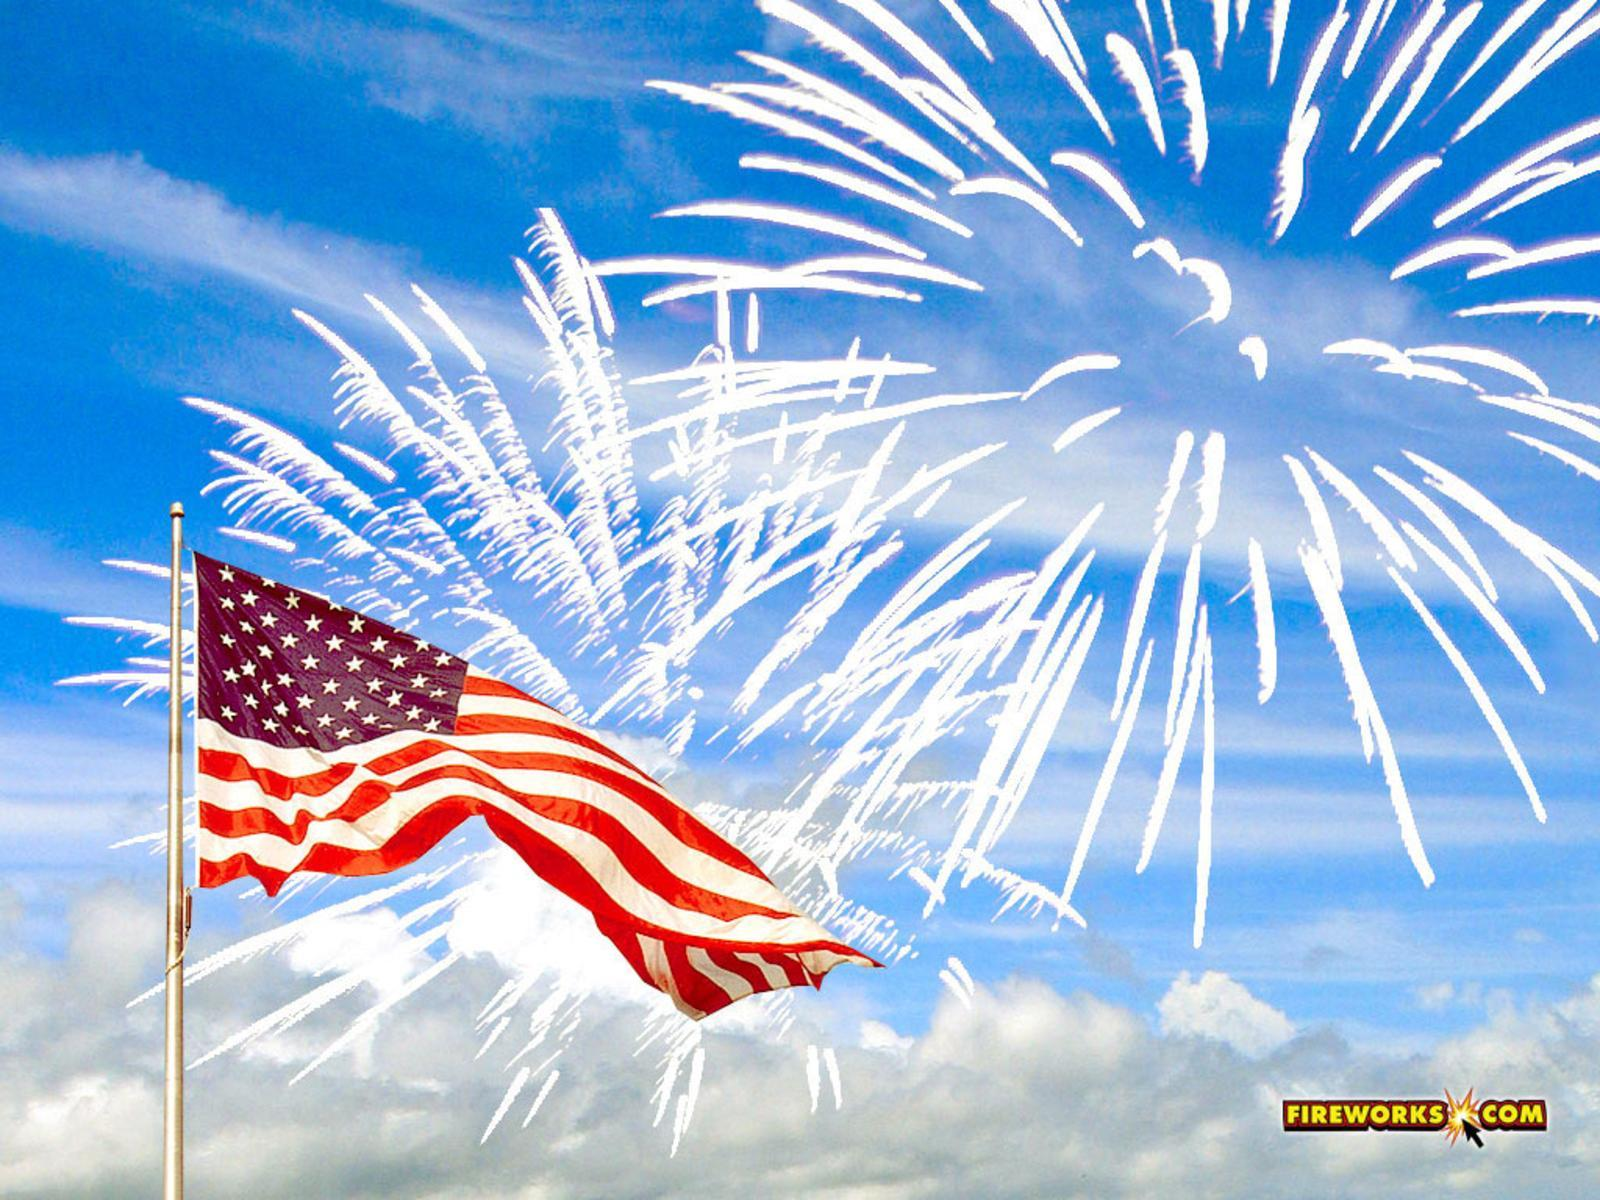 Fireworks clipart memorial day Memorial Of  4th of